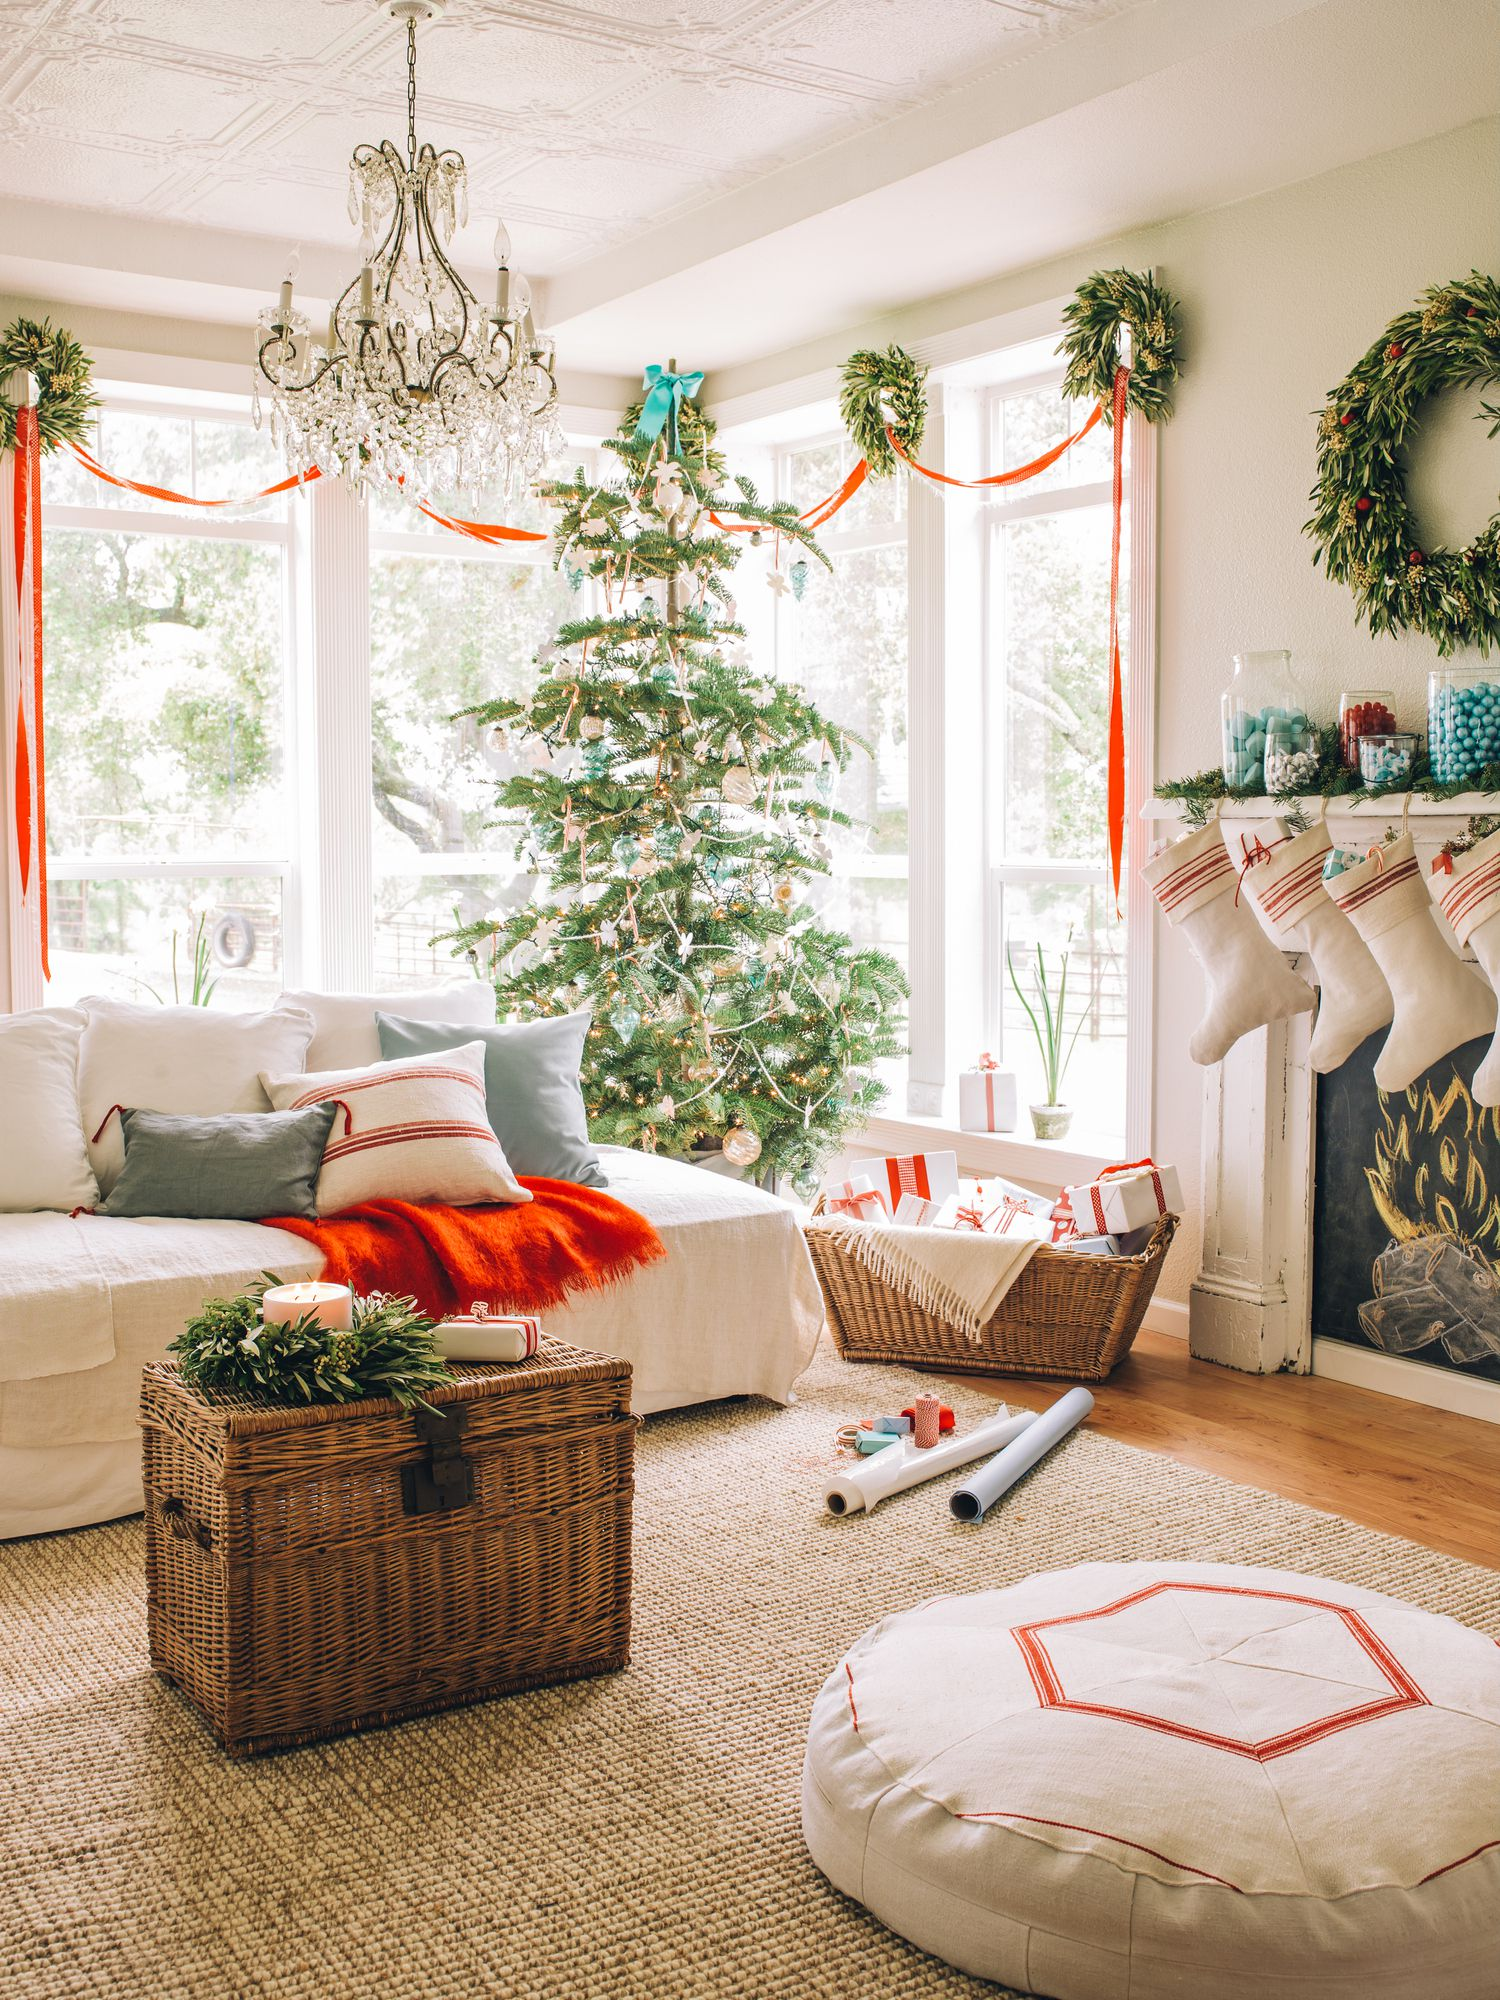 Christmas Living Room Decorating Ideas Decor 15 beautiful ways to decorate the living room for christmas